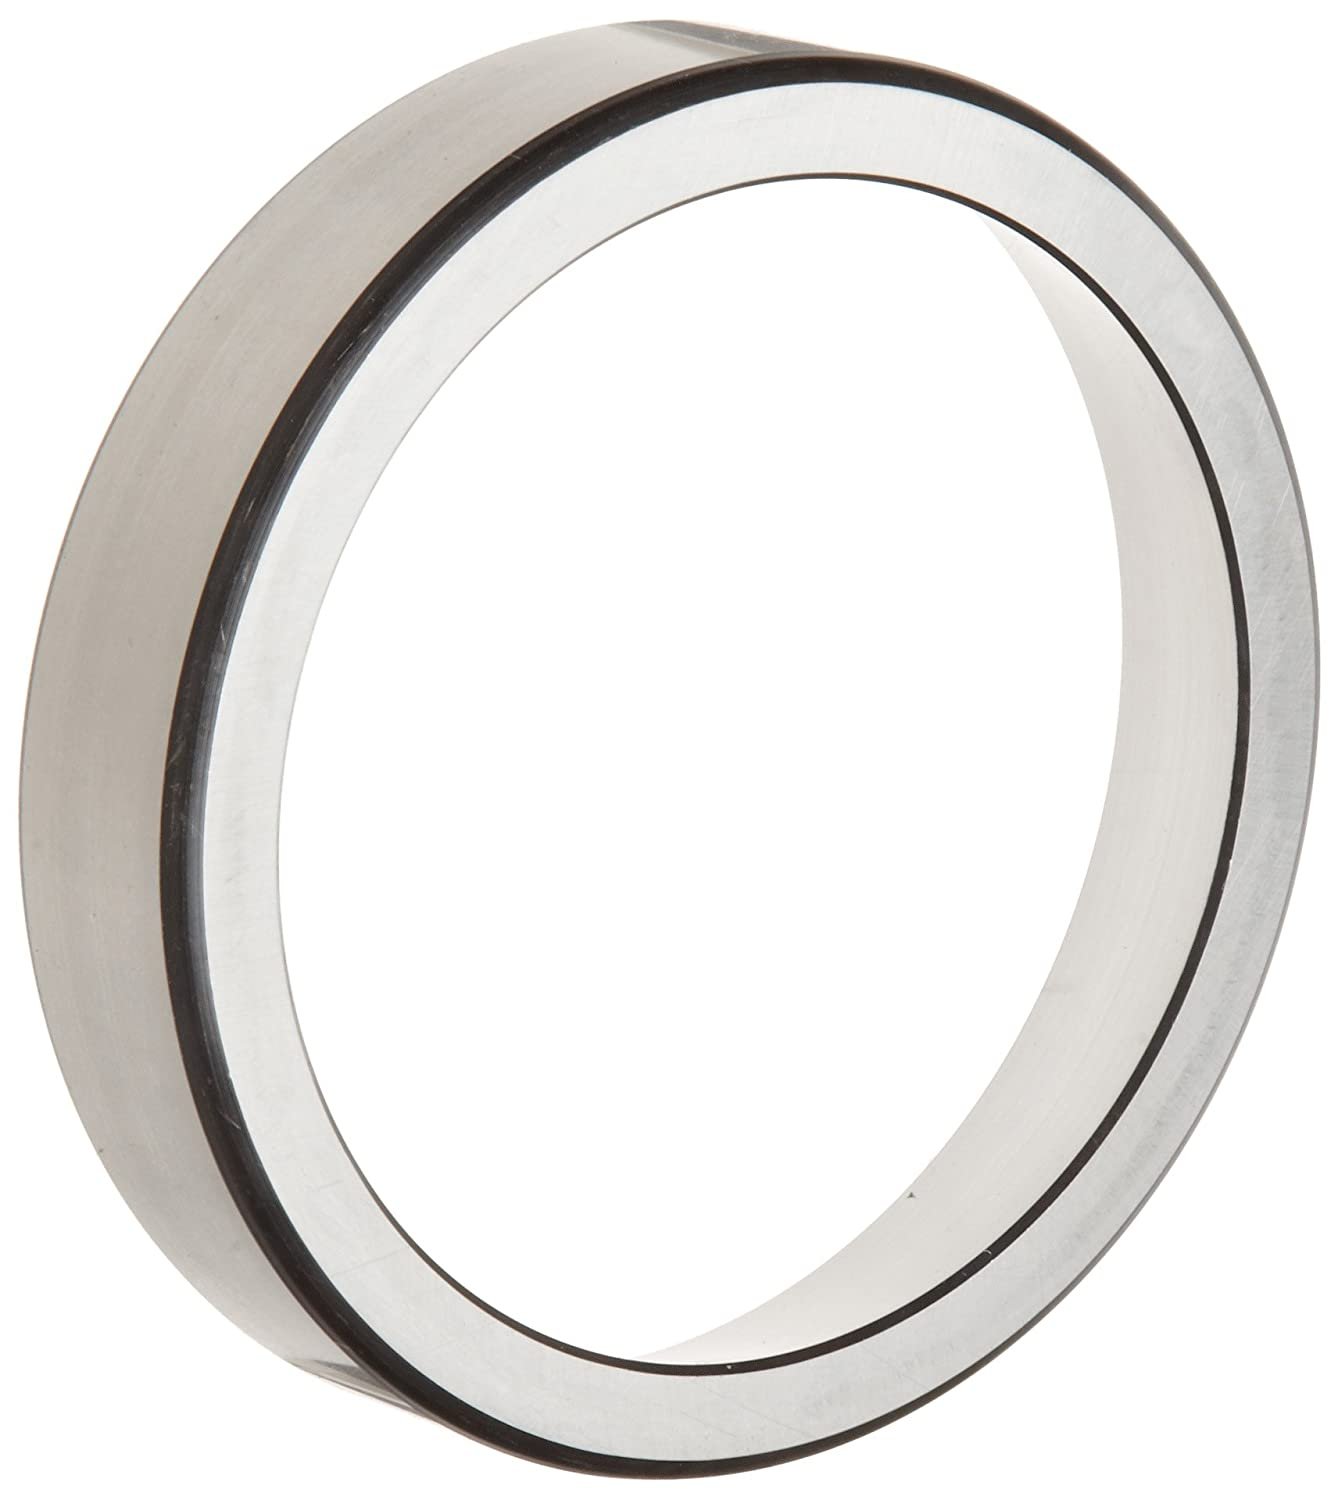 "Timken 453A Tapered Roller Bearing, Single Cup, Standard Tolerance, Straight Outside Diameter, Steel, Inch, 4.2500"" Outside Diameter, 0.8750\"" Width 71BVdhXxfJL"